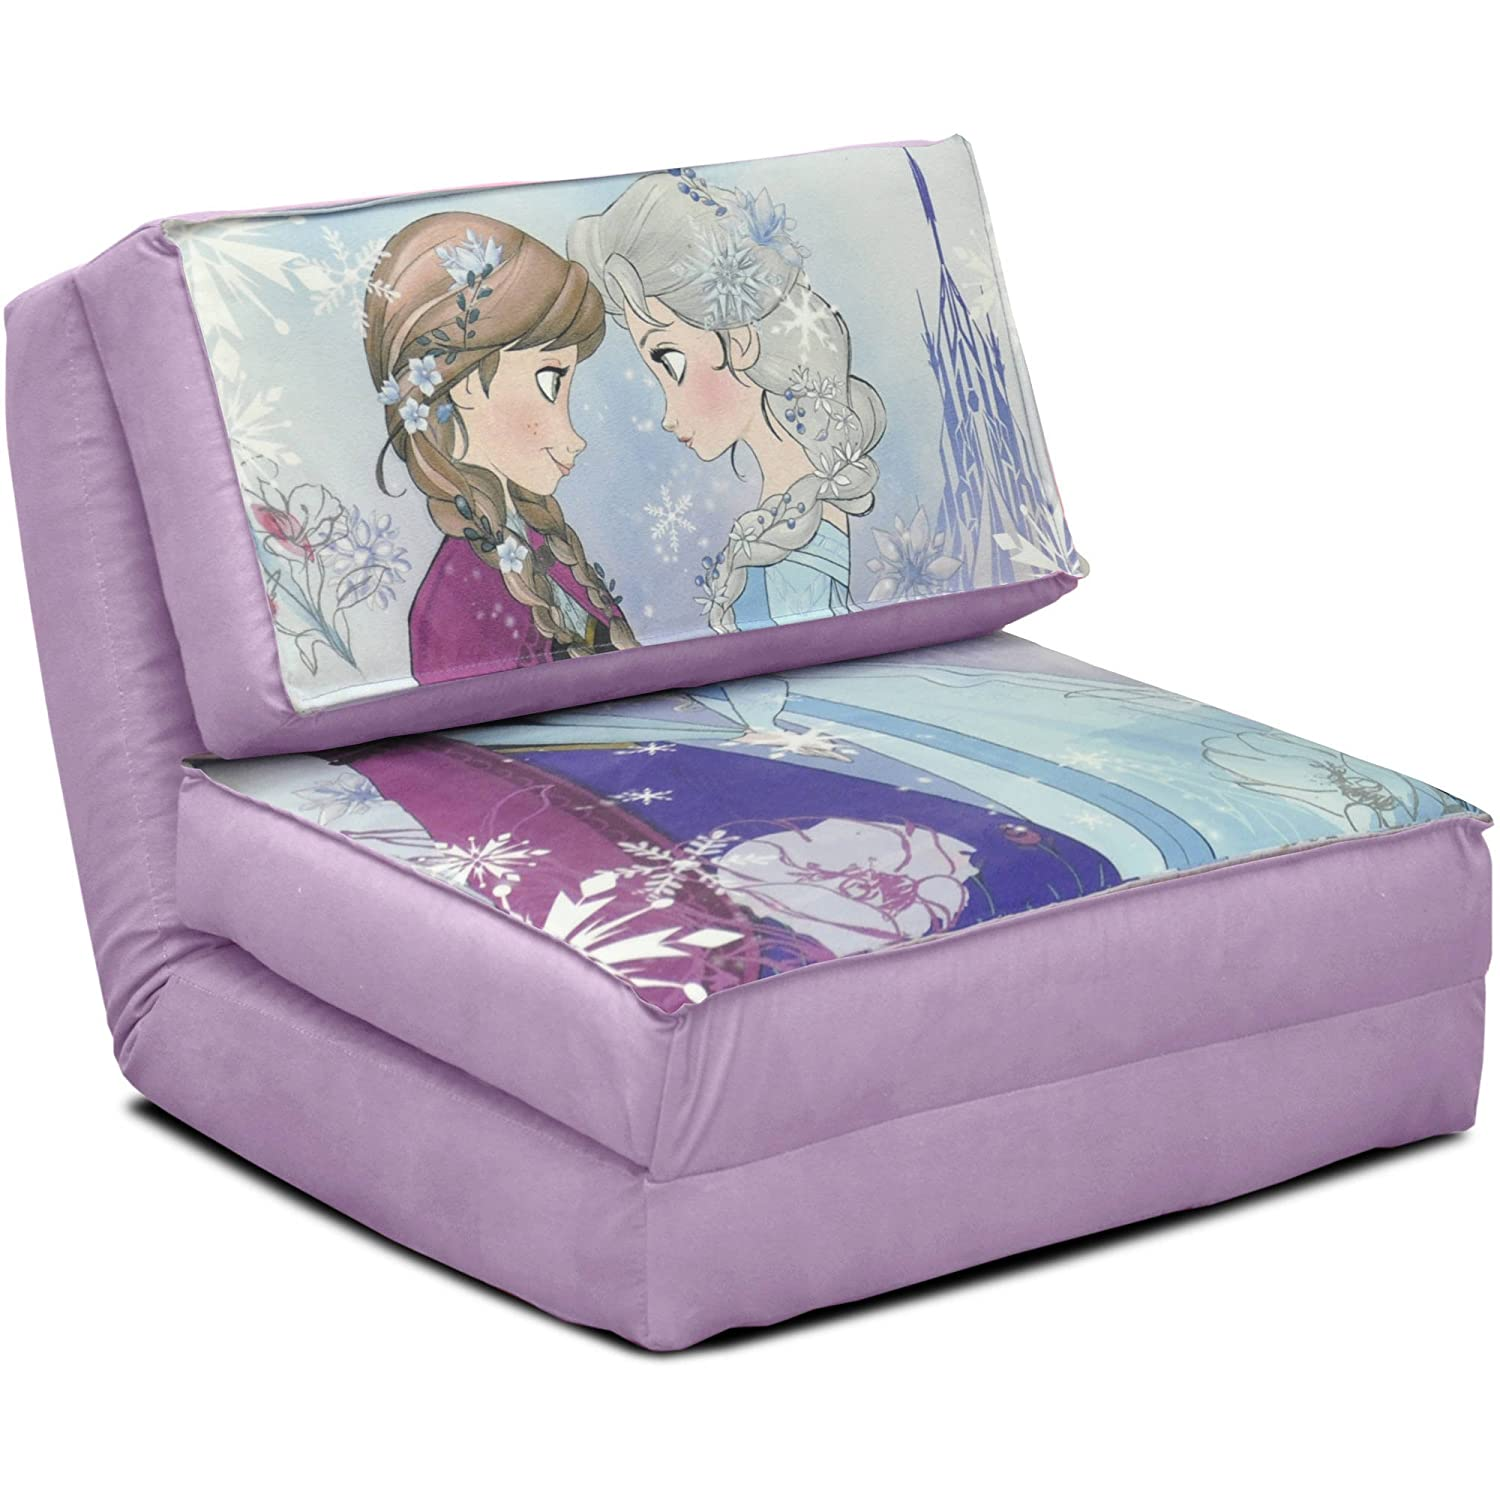 Amazon.com: Disney Frozen Anna And Elsa Flip Chair Tween Sofa Kids Room  Furniture Home New Girls Bedroom Bed Seat, Chair Easily Converts Into A  Bed, ...